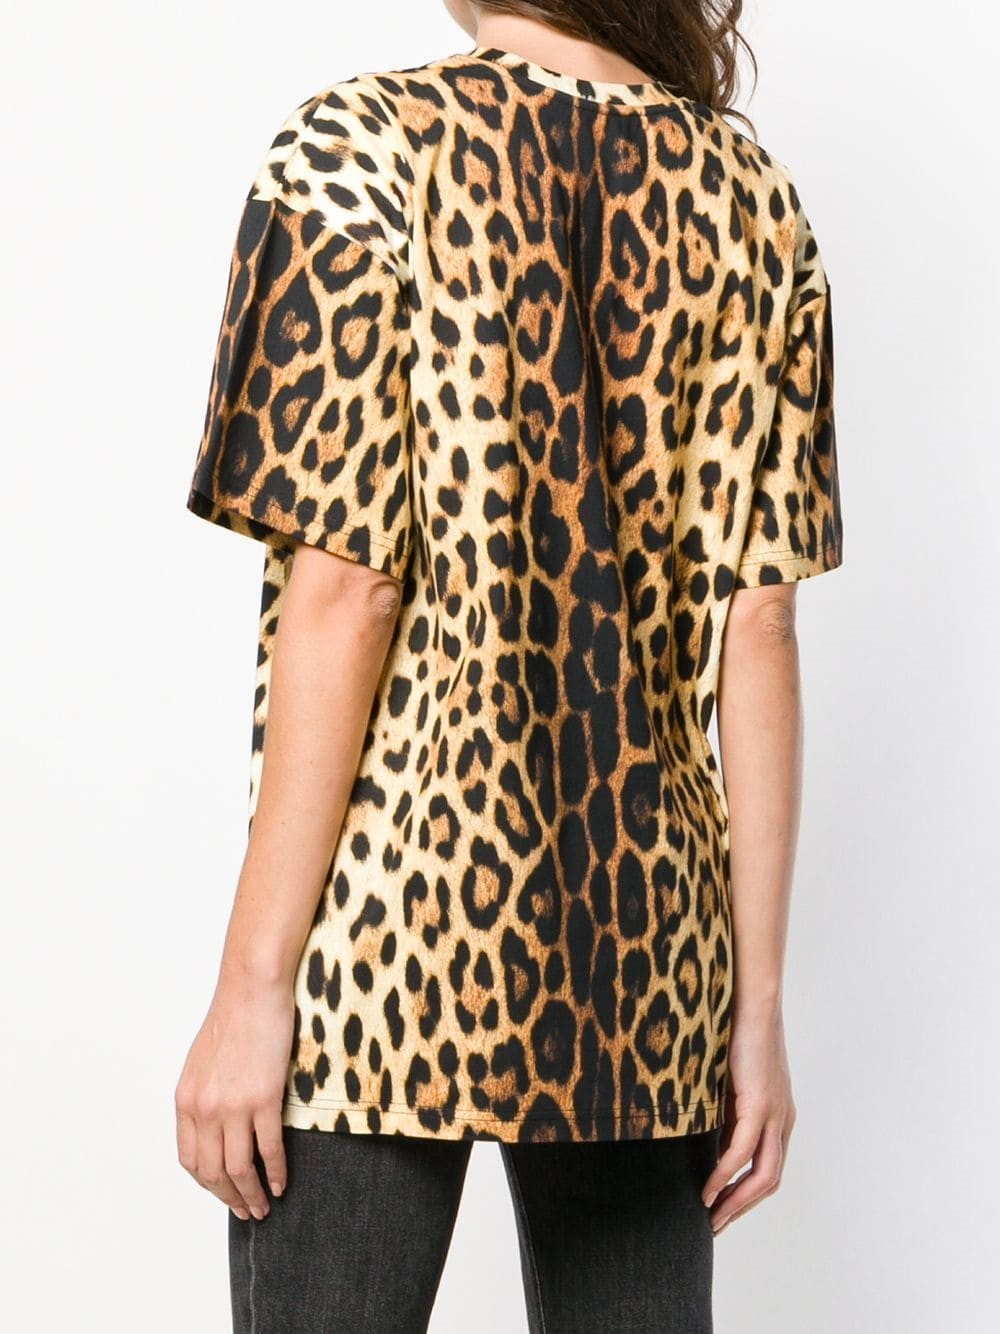 efdf700db78c2c moschino LEOPARD PRINT T-SHIRT available on montiboutique.com - 26401